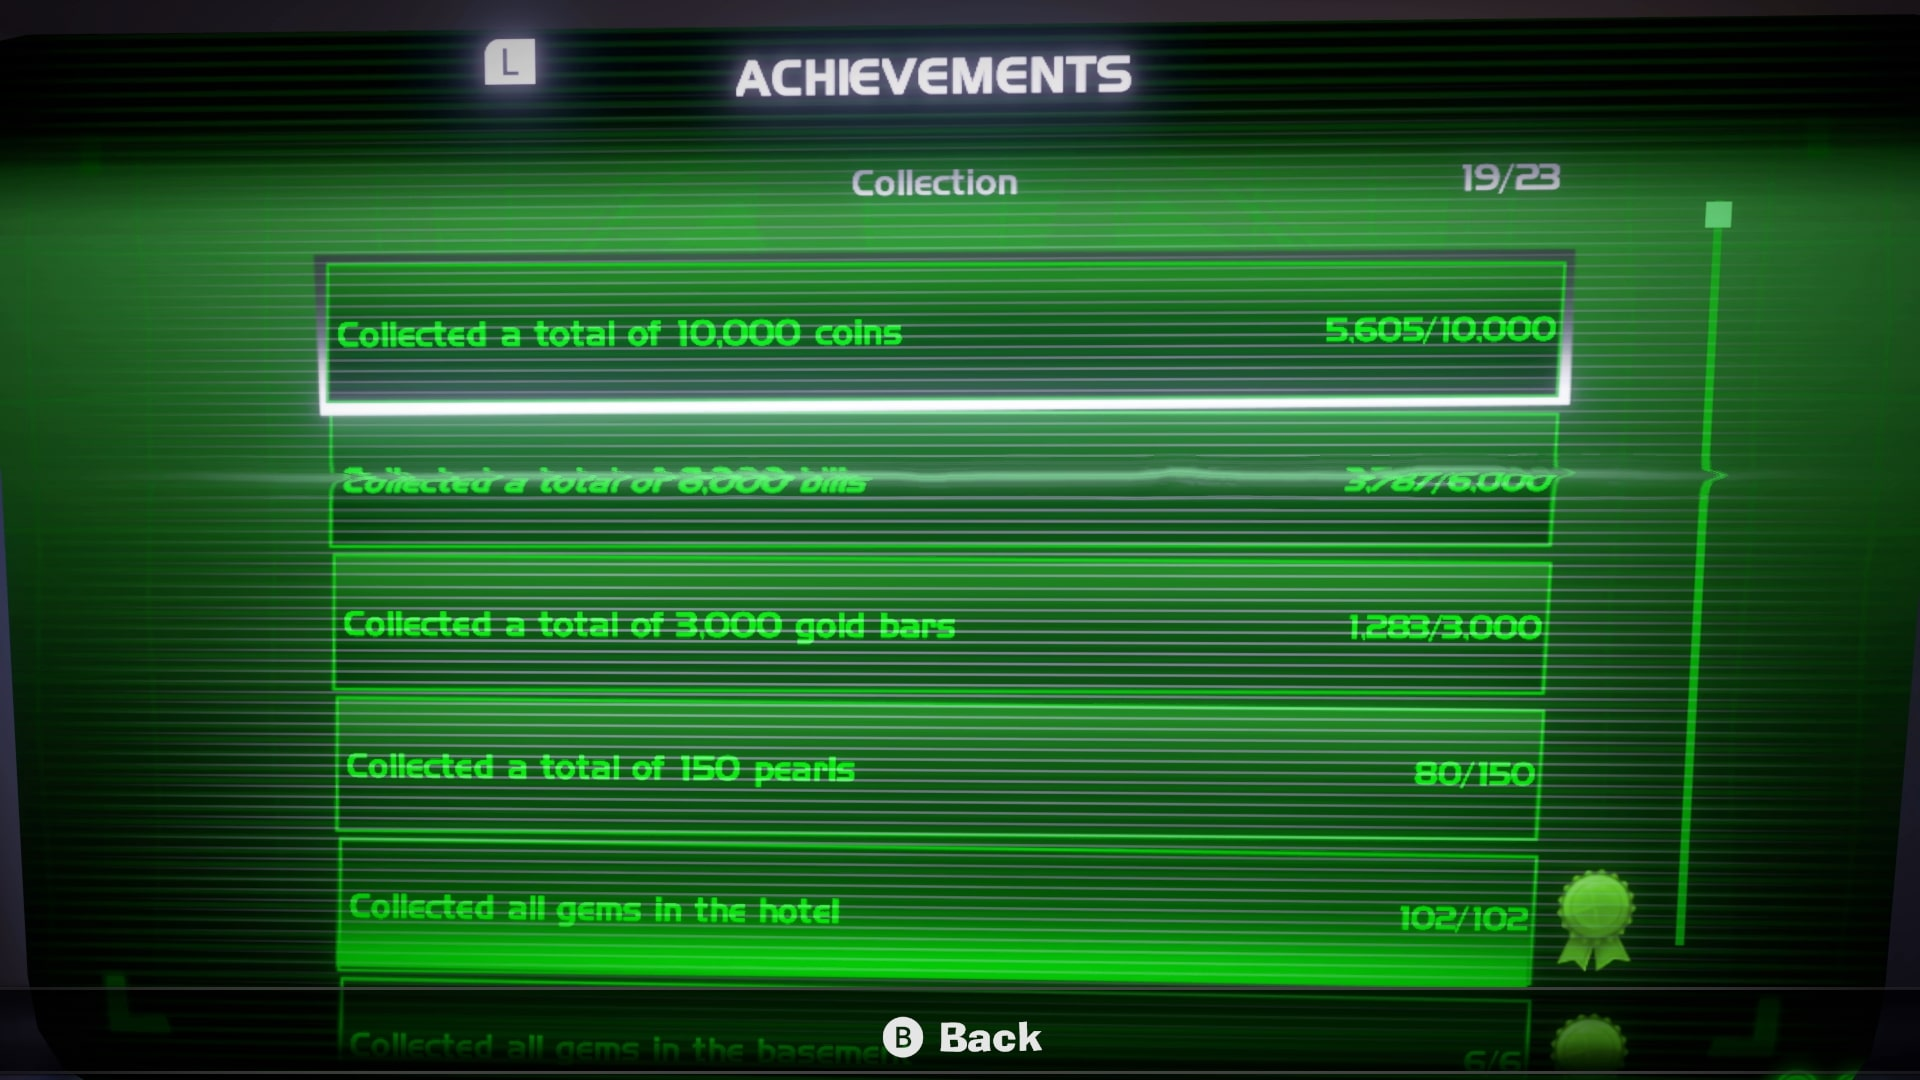 Luigi S Mansion 3 Achievements How To Check Your